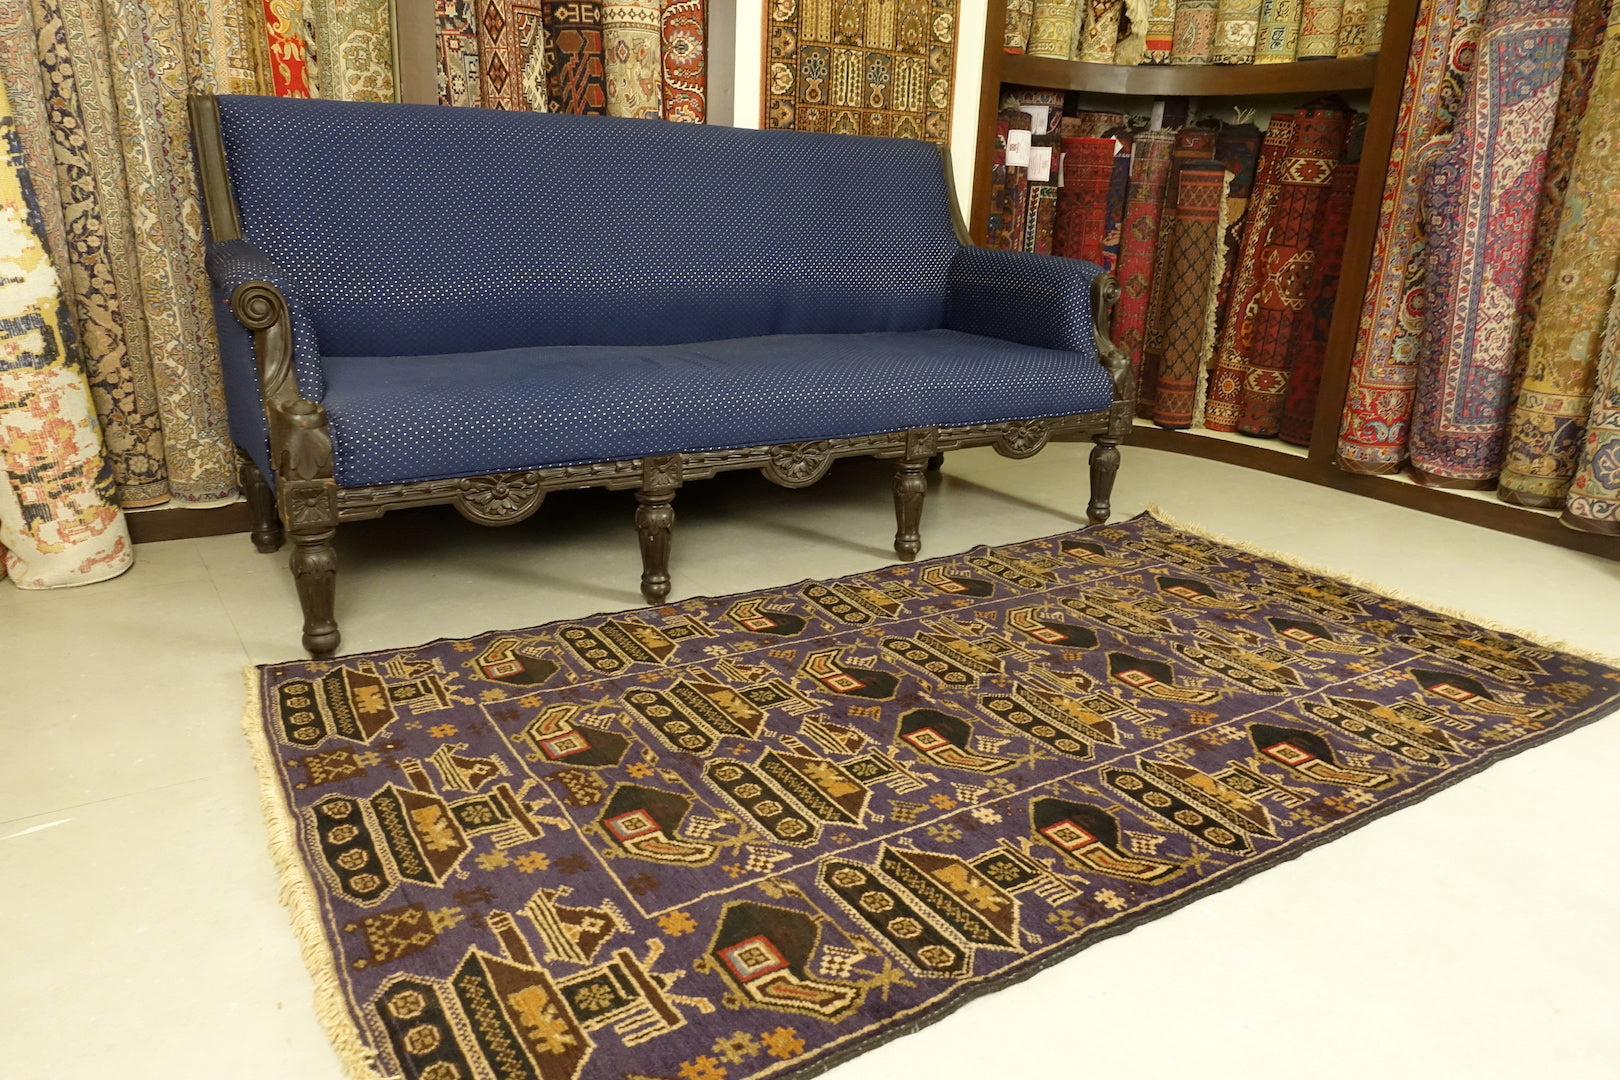 A balochi wool rug that measures 3.5 feet by 6 feet. The colours used on the rug are blue, orange, beige and rust.